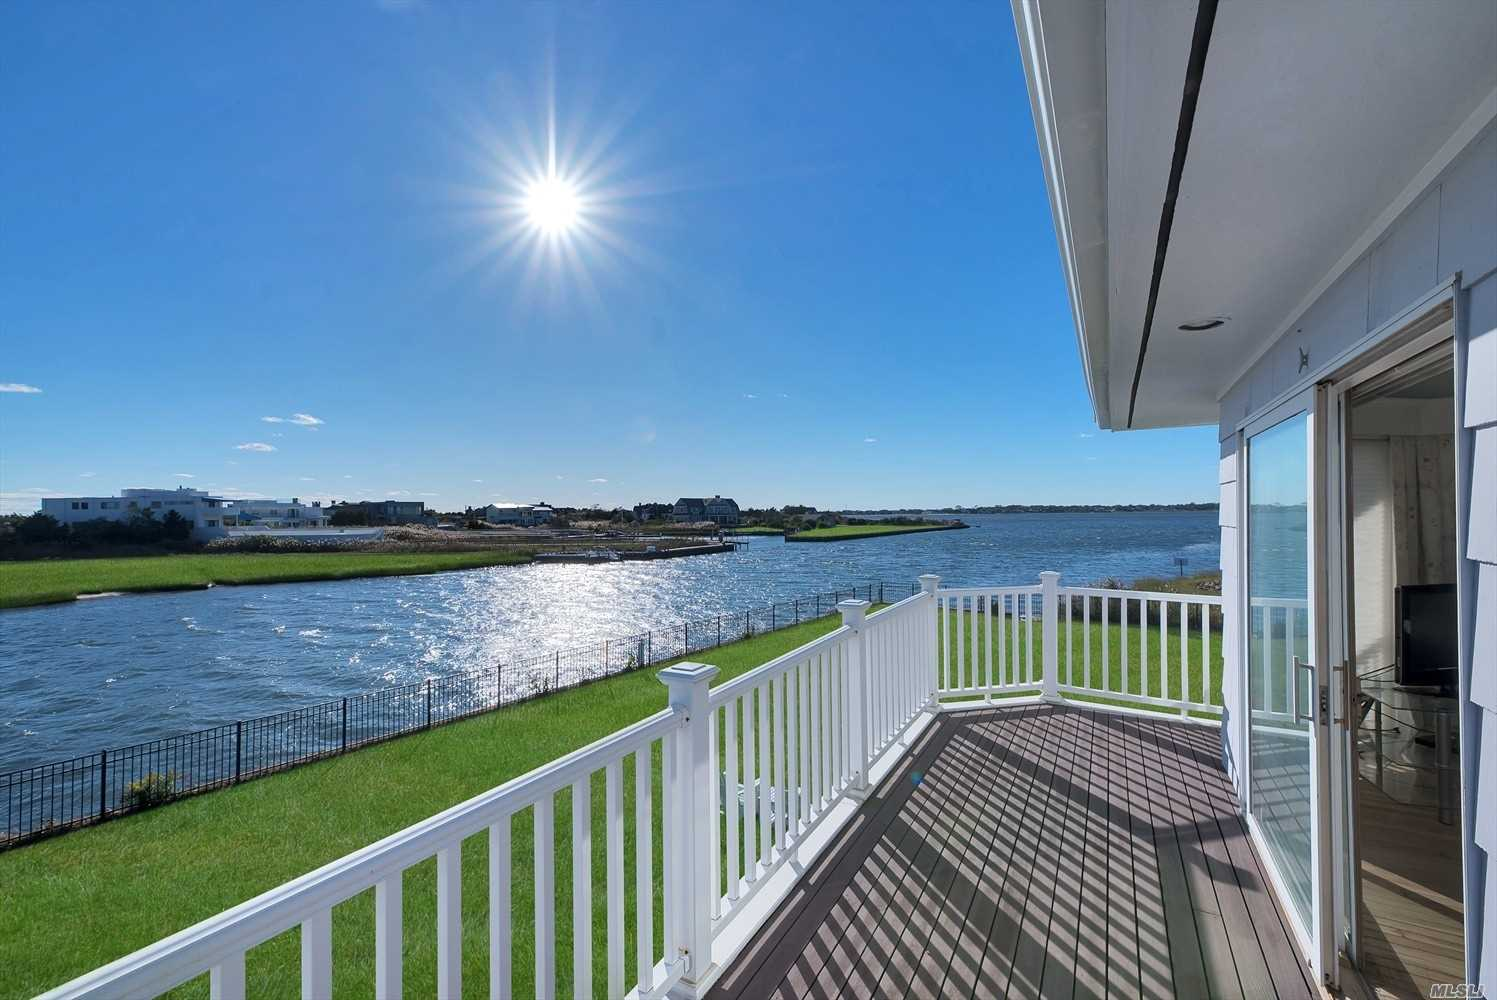 The Quintessential Quogue Location. Welcome To The Point Of Quogo Neck Lane. With Over 600 Feet Of Bulkhead And A Protected Slip, If You Are A Boat Lover You Just Found Heaven. Heated Gunite Pool And 1.8 Acres To Enjoy, Nothing Compares To Waking Up On The Second Floor, Opening Your Eyes And Seeing The Water From Every Window. Stroll Onto Your Balcony And Get Lost In The Salt Air Breezes. Move Right In Or Build Your Dream House.